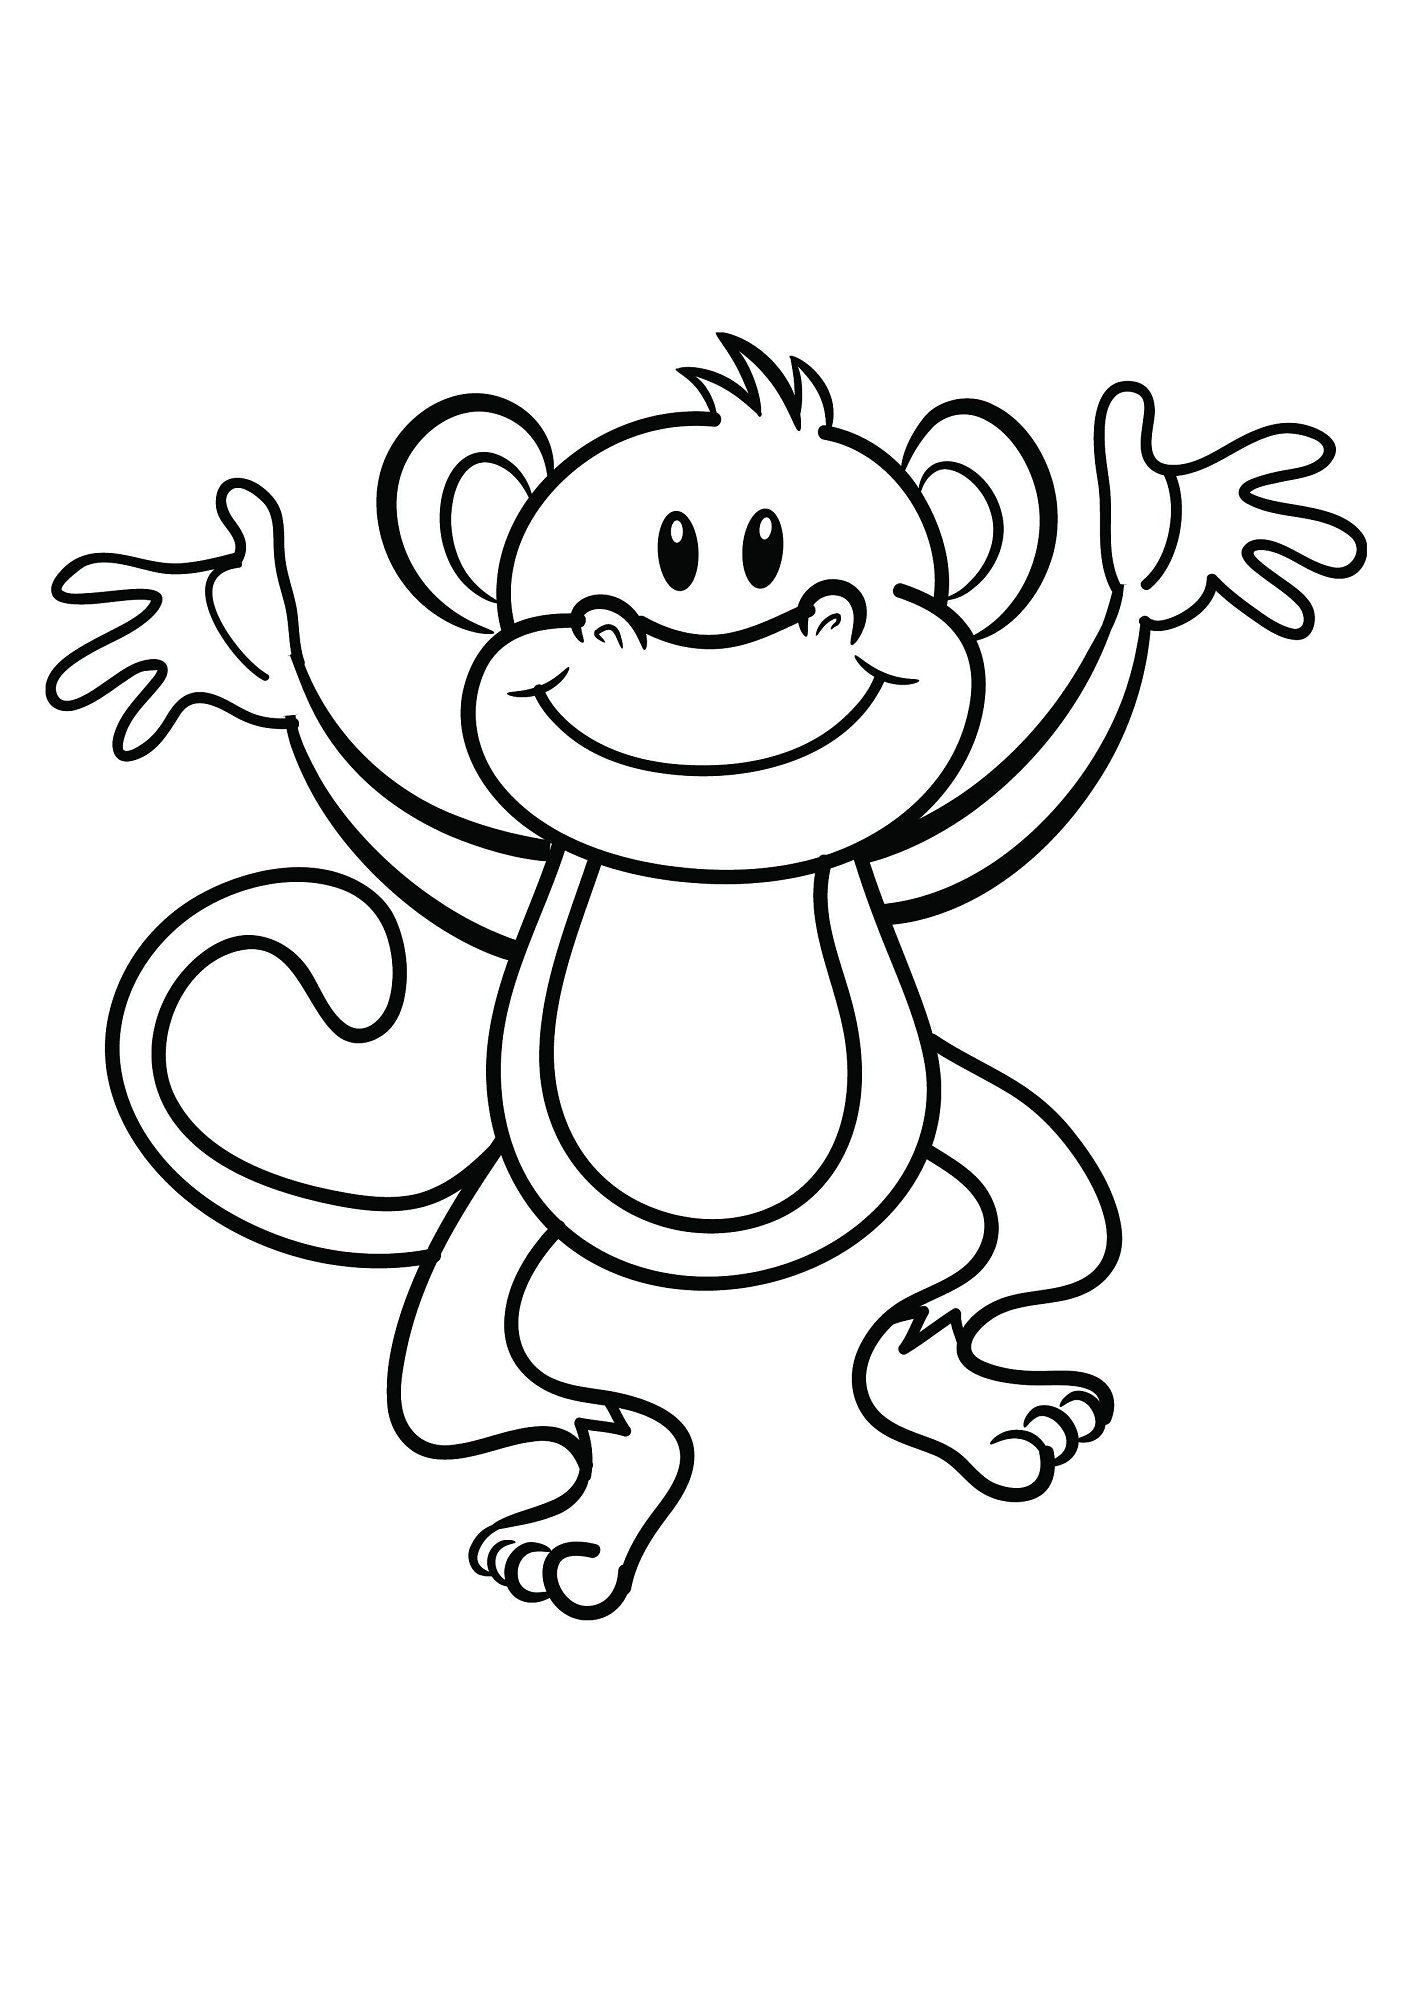 a coloring picture coloring pages of monkeys printable activity shelter picture coloring a